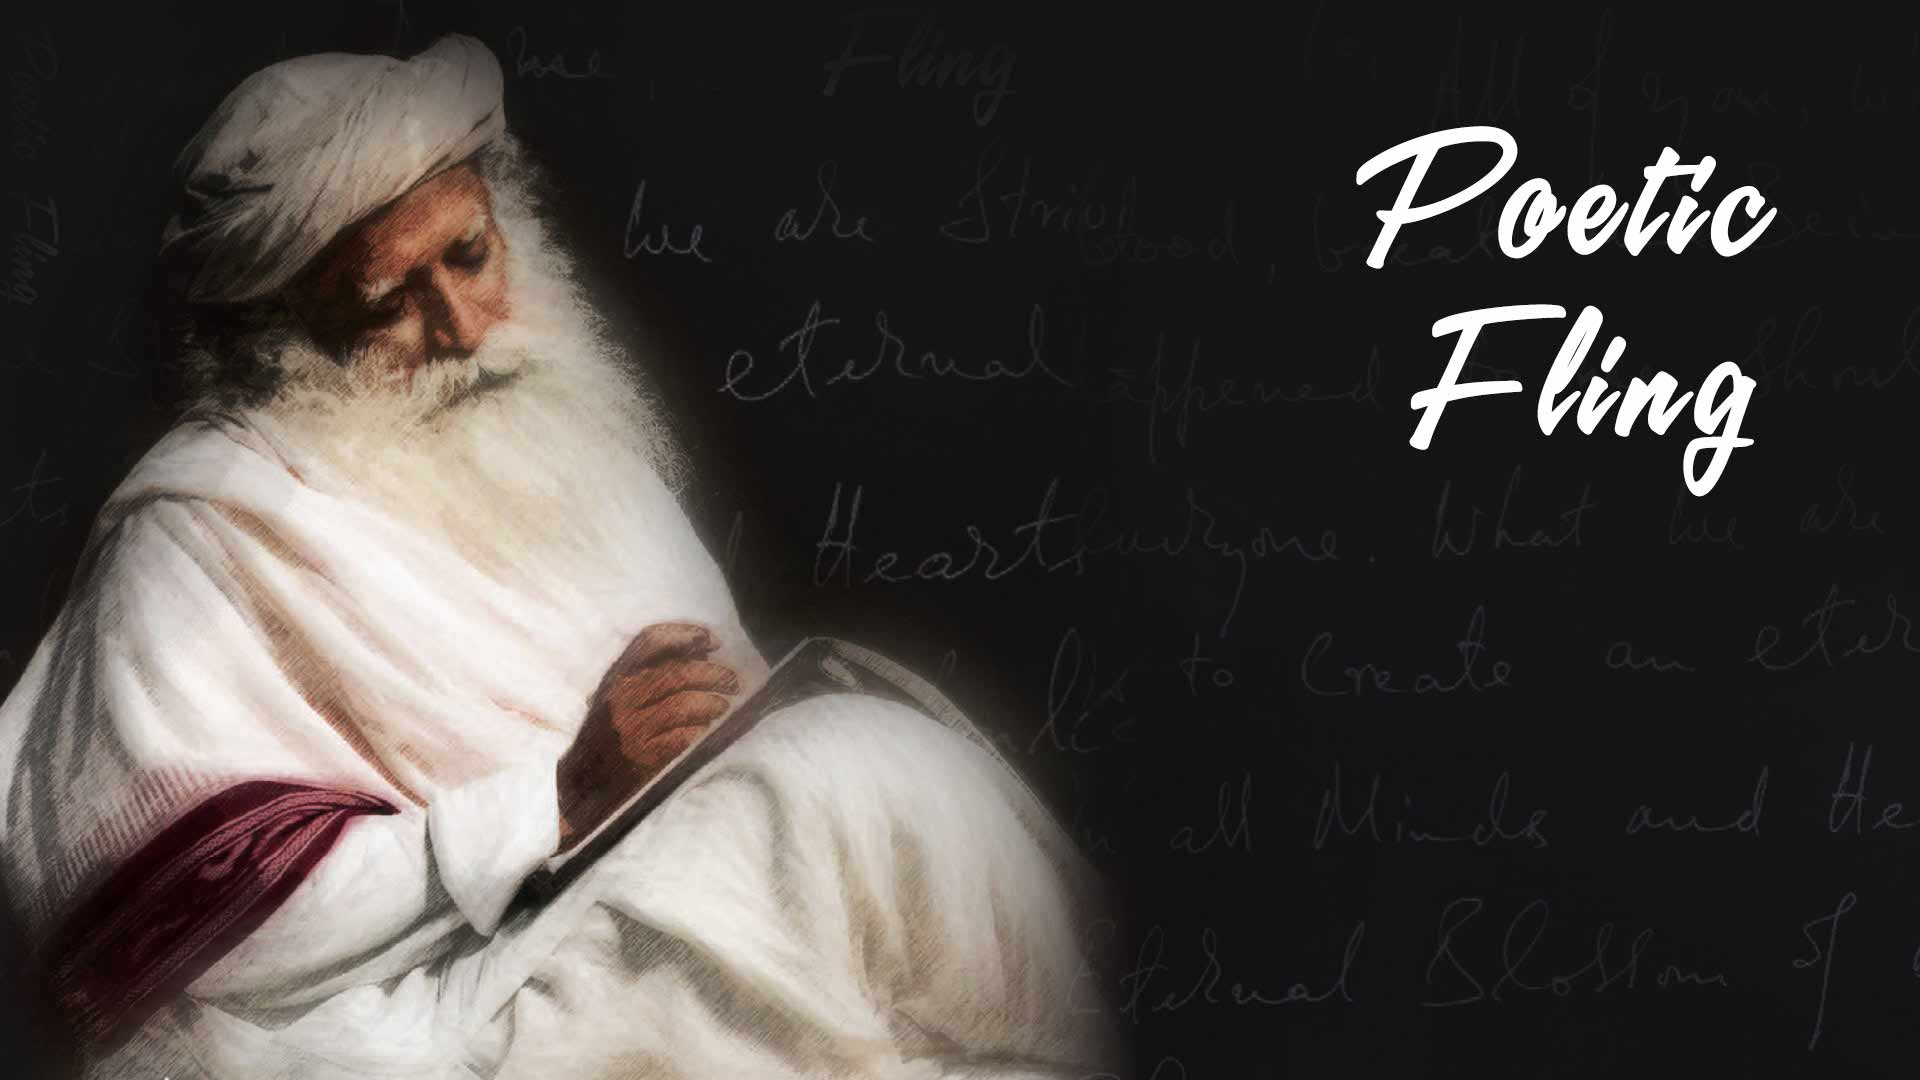 Poetic Fling - Sadhguru's Latest DVD